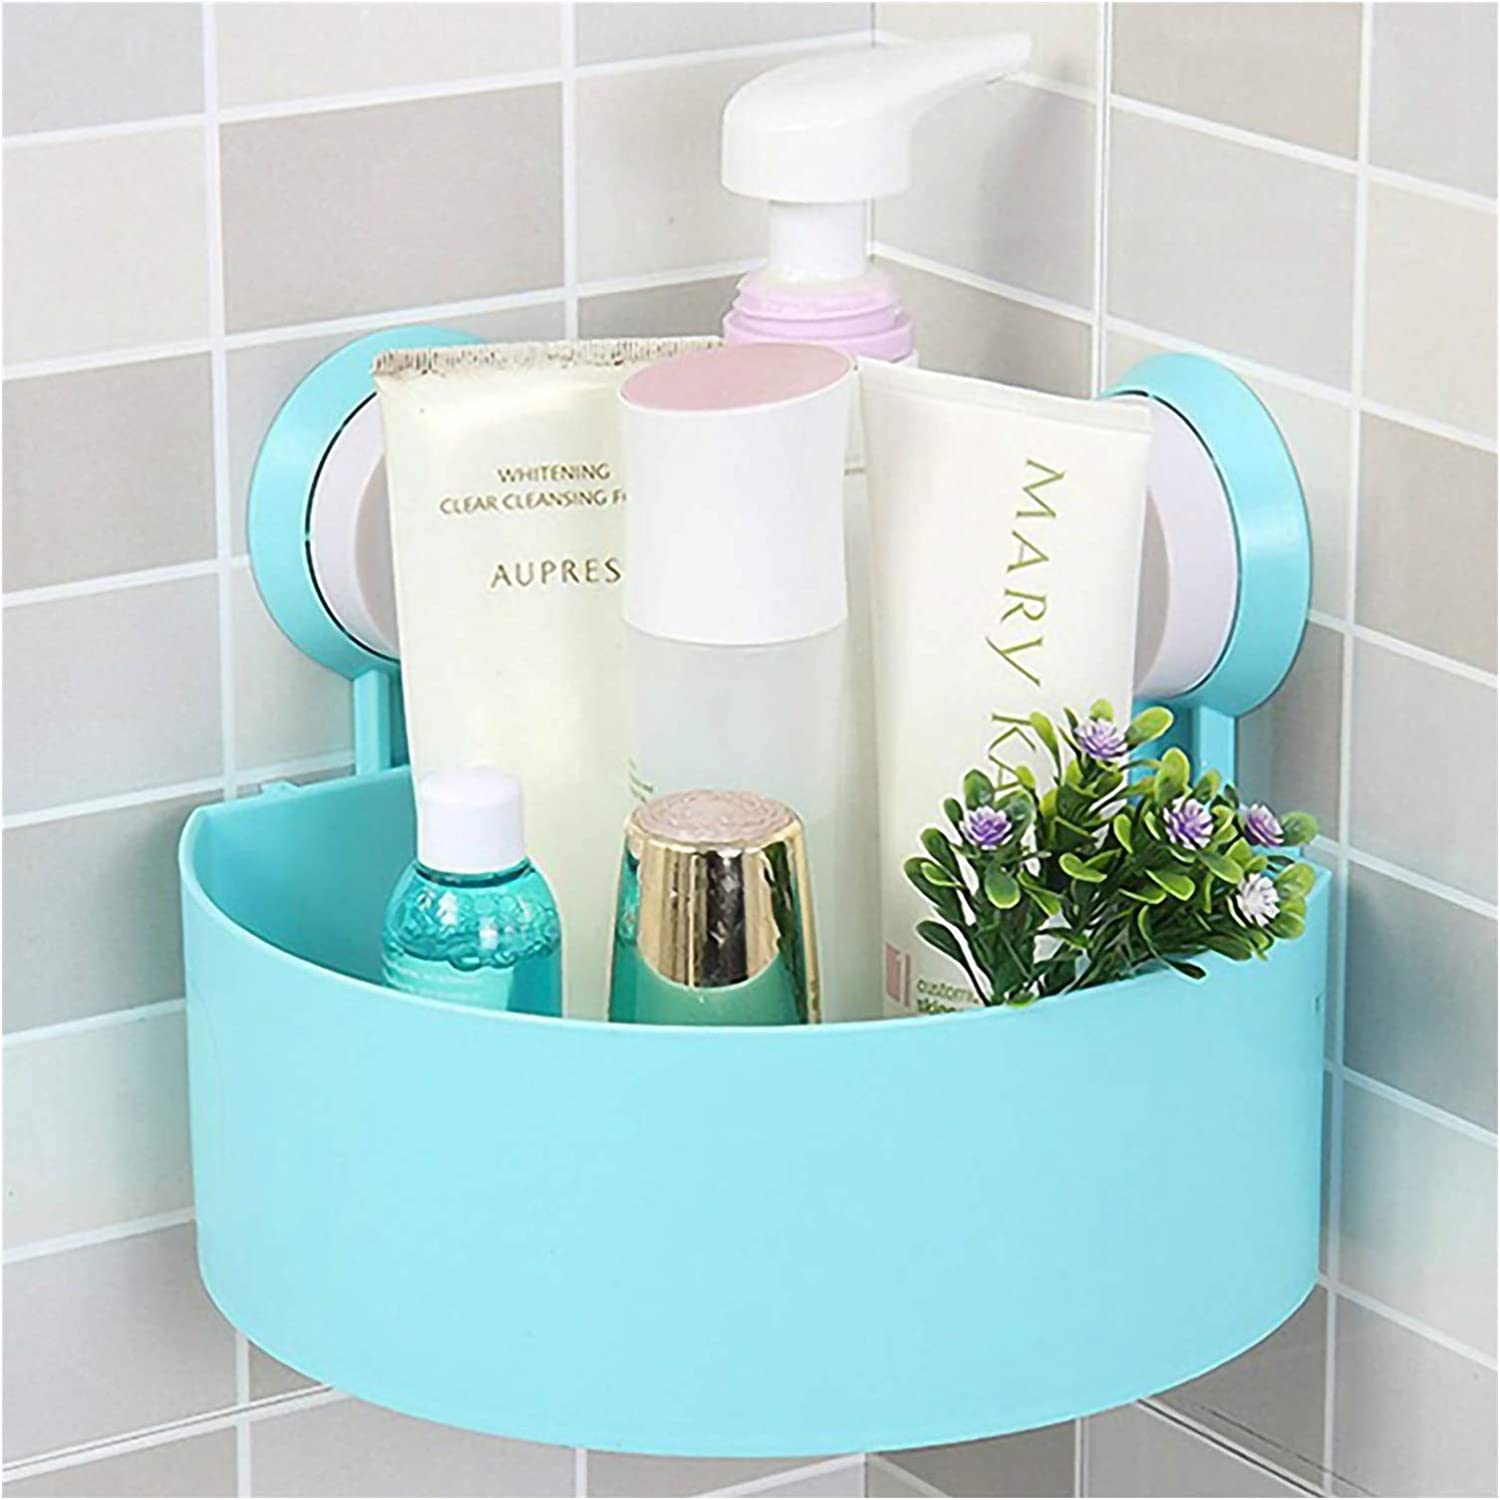 Bathroom shelf Corner Shower Caddy Suction Max 81% Don't miss the campaign OFF Shelf Bas Storage Cup